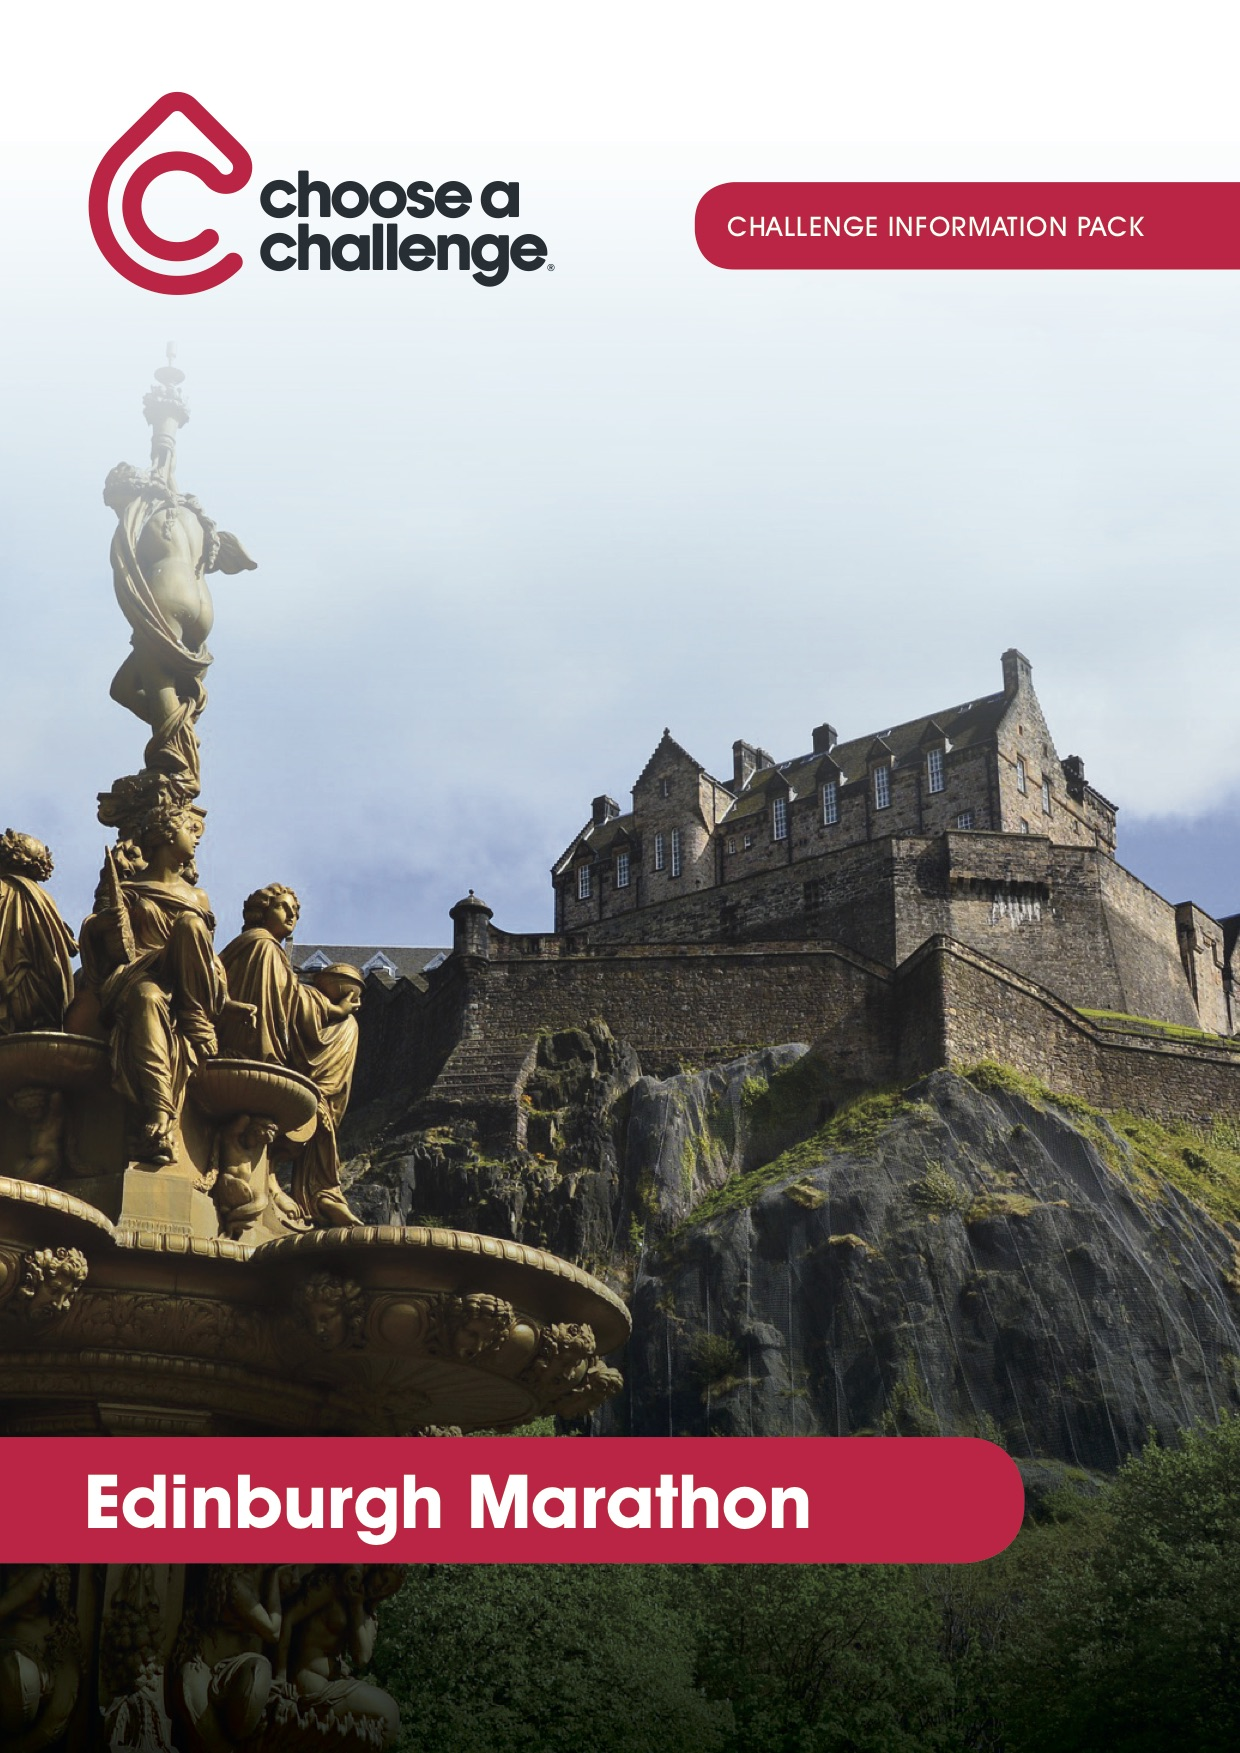 Edinburgh Marathon - Download the full trip brochure to learn more about your accommodations, pricing and the trip itself